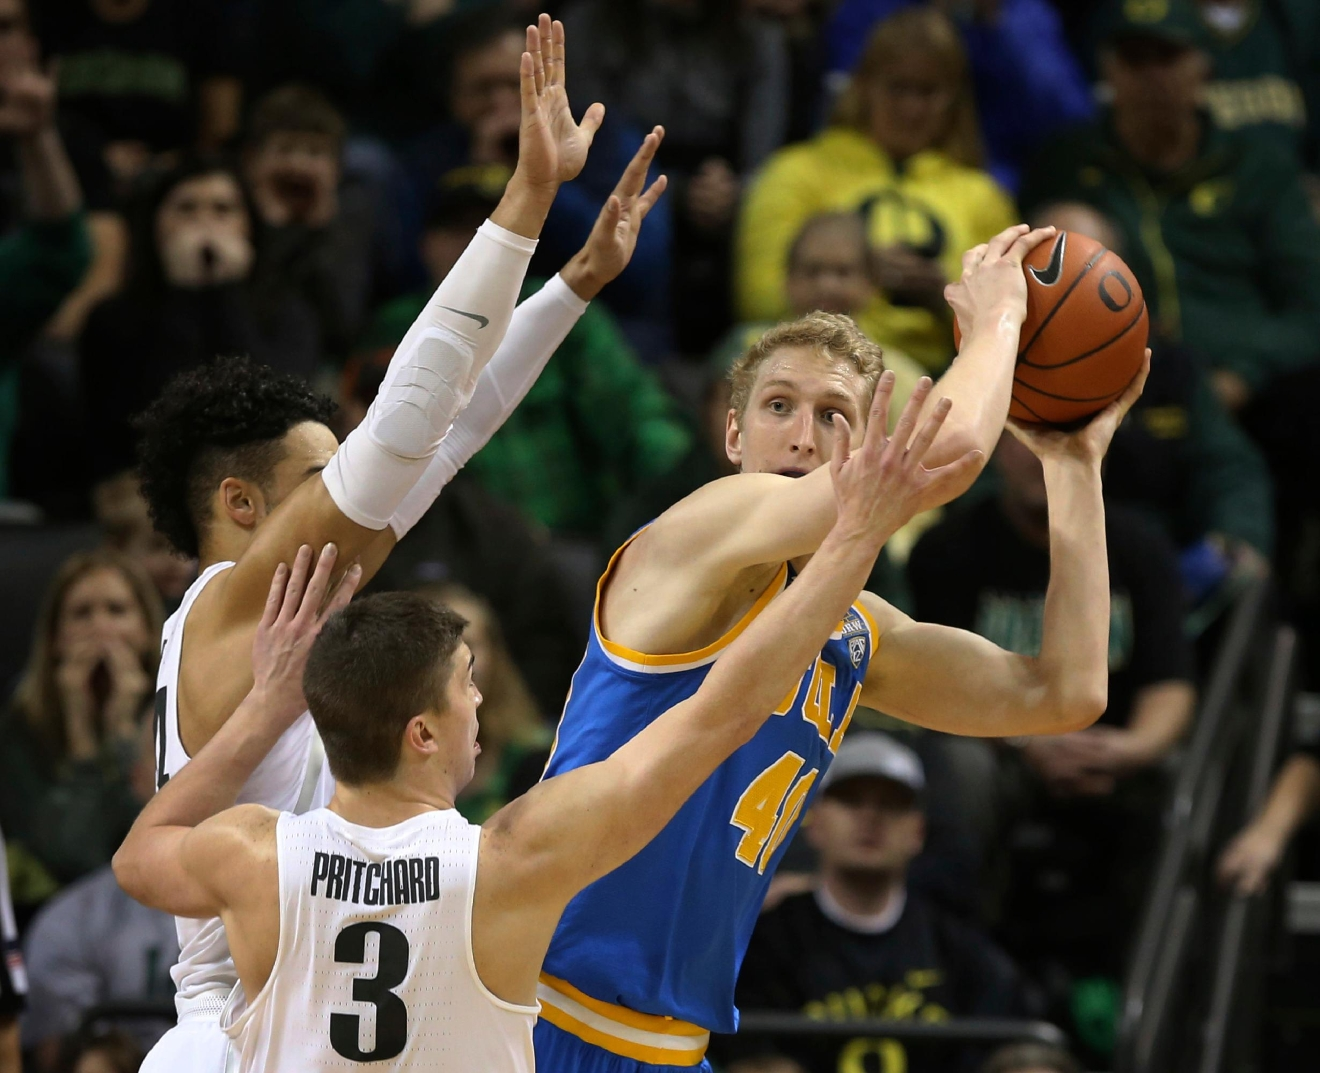 Oregon's Dillon Brooks, left, and Payton Pritchard pressure UCLA's Thomas Welsh during the first half of an NCAA college basketball game Wednesday Dec. 28, 2016, in Eugene, Ore. (AP Photo/Chris Pietsch)